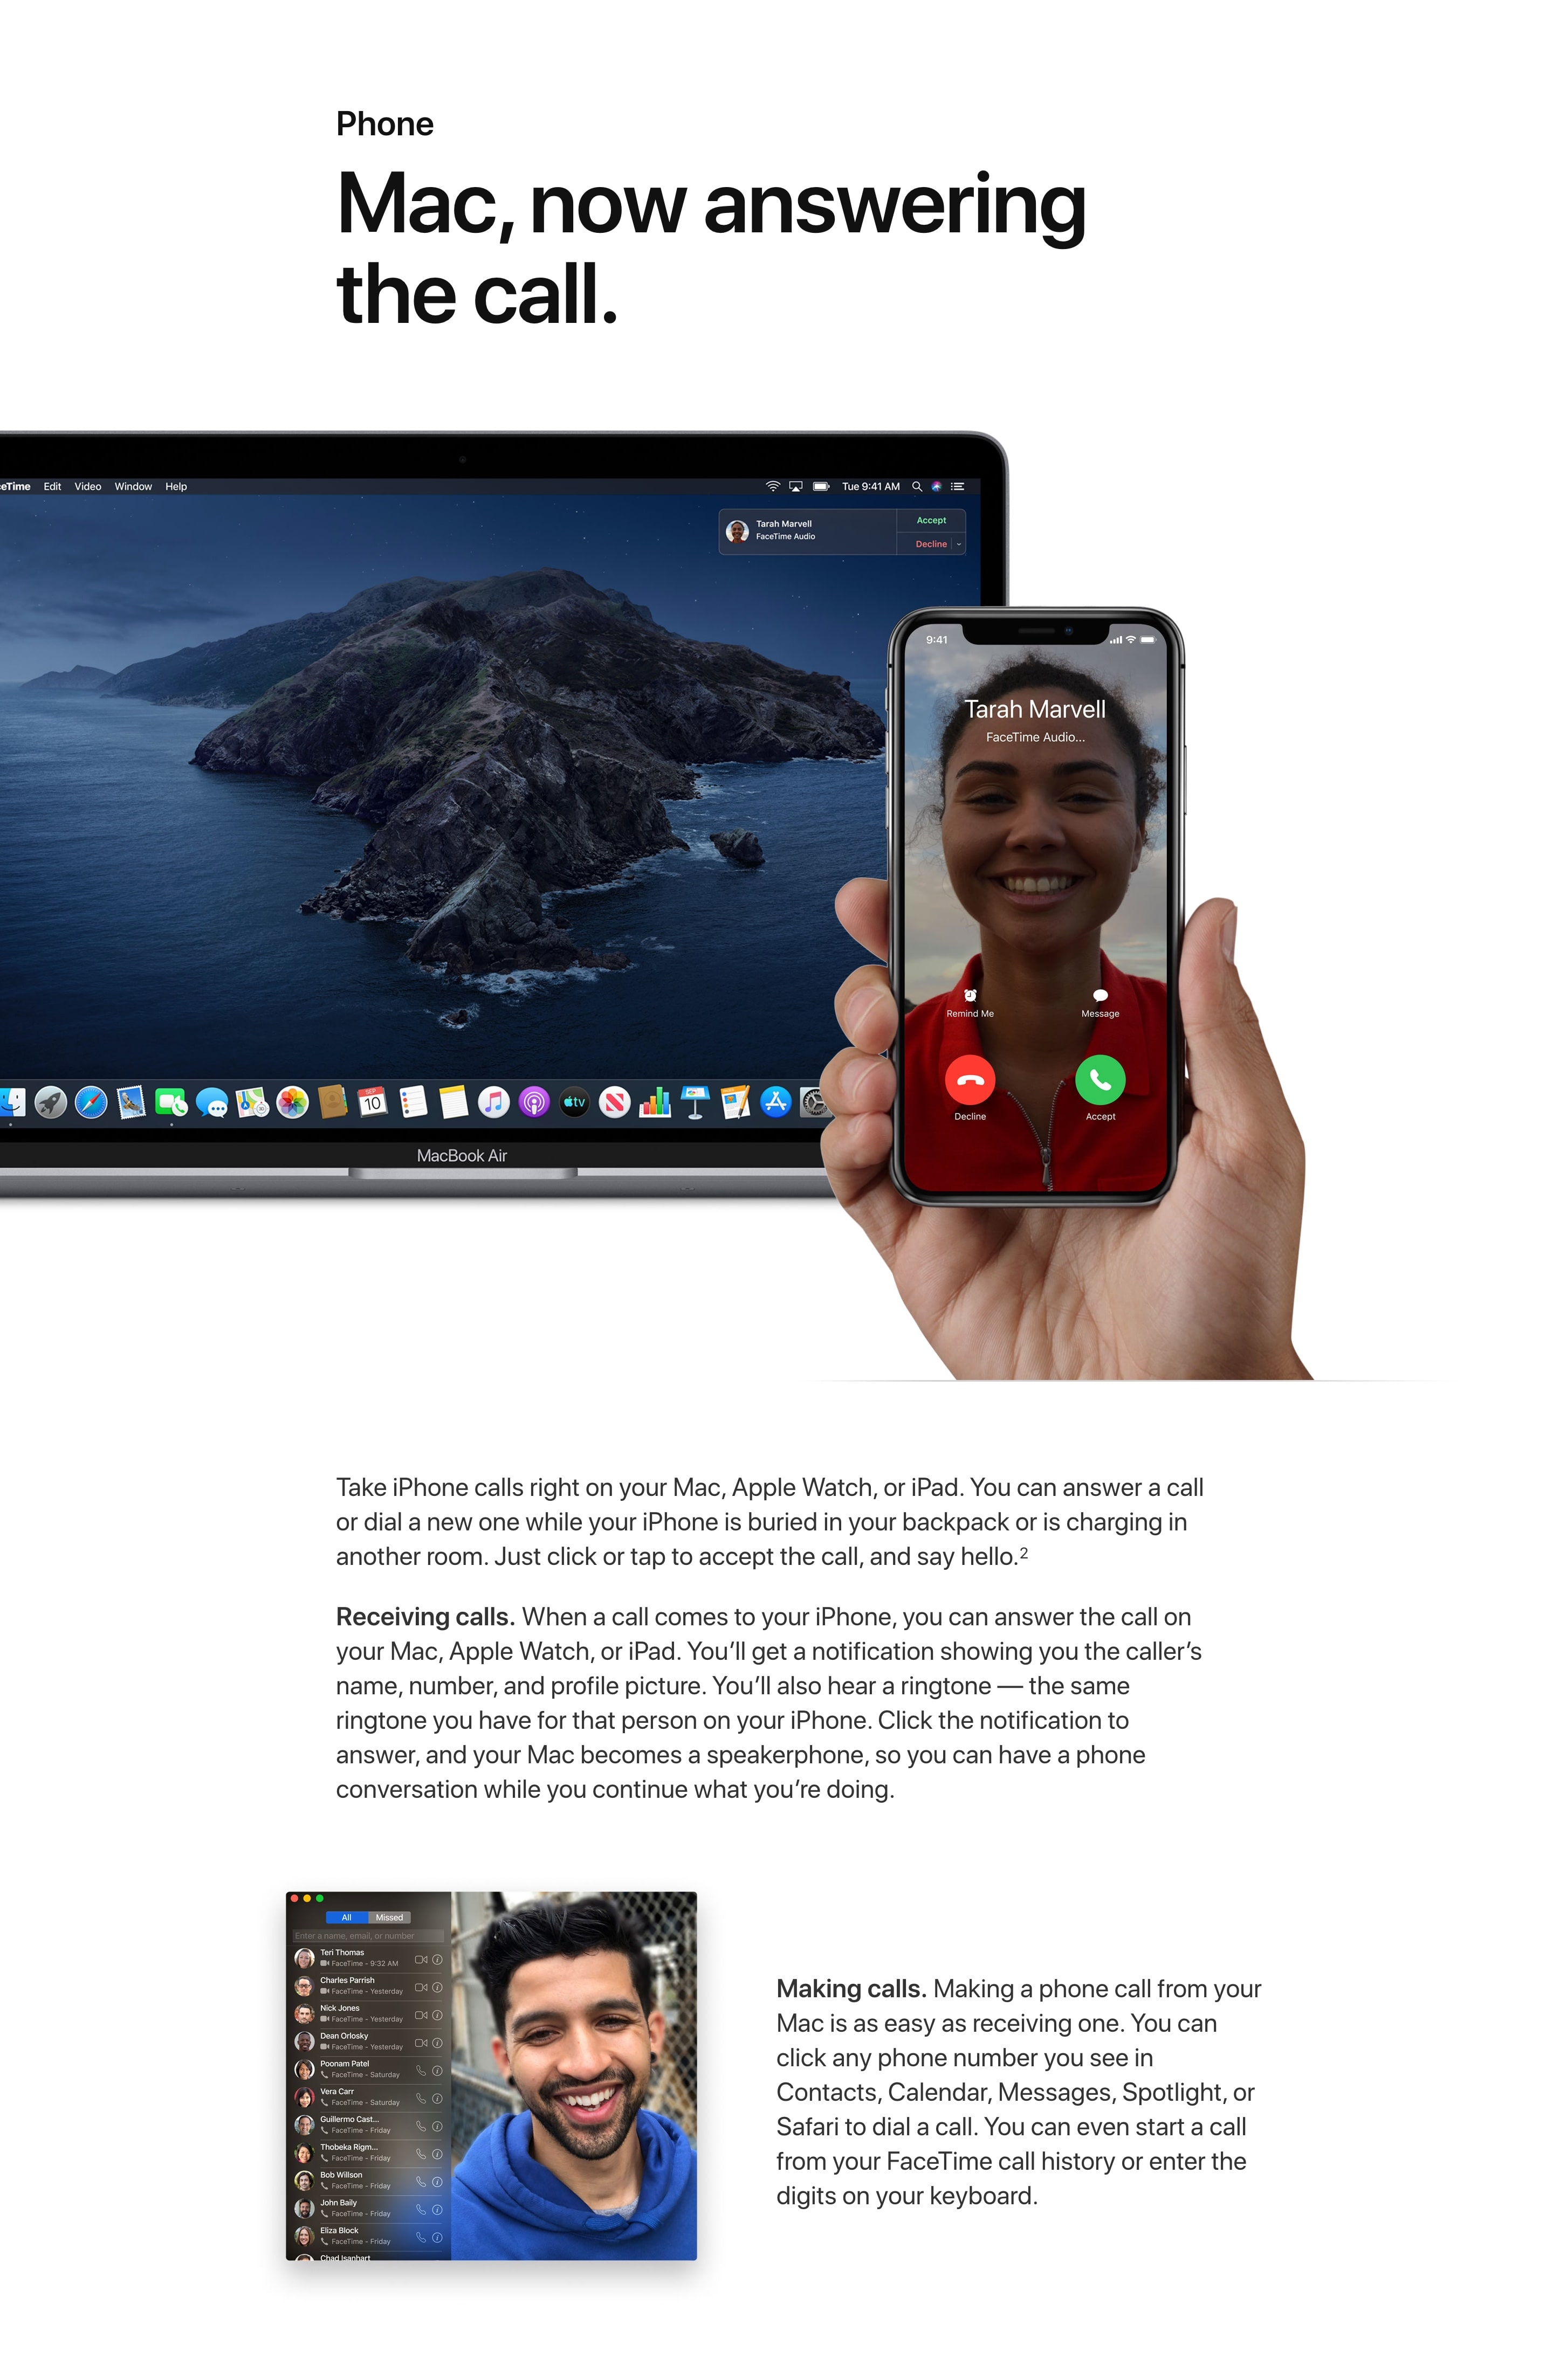 Page Section With Two Images & A Headline For Product Introduction